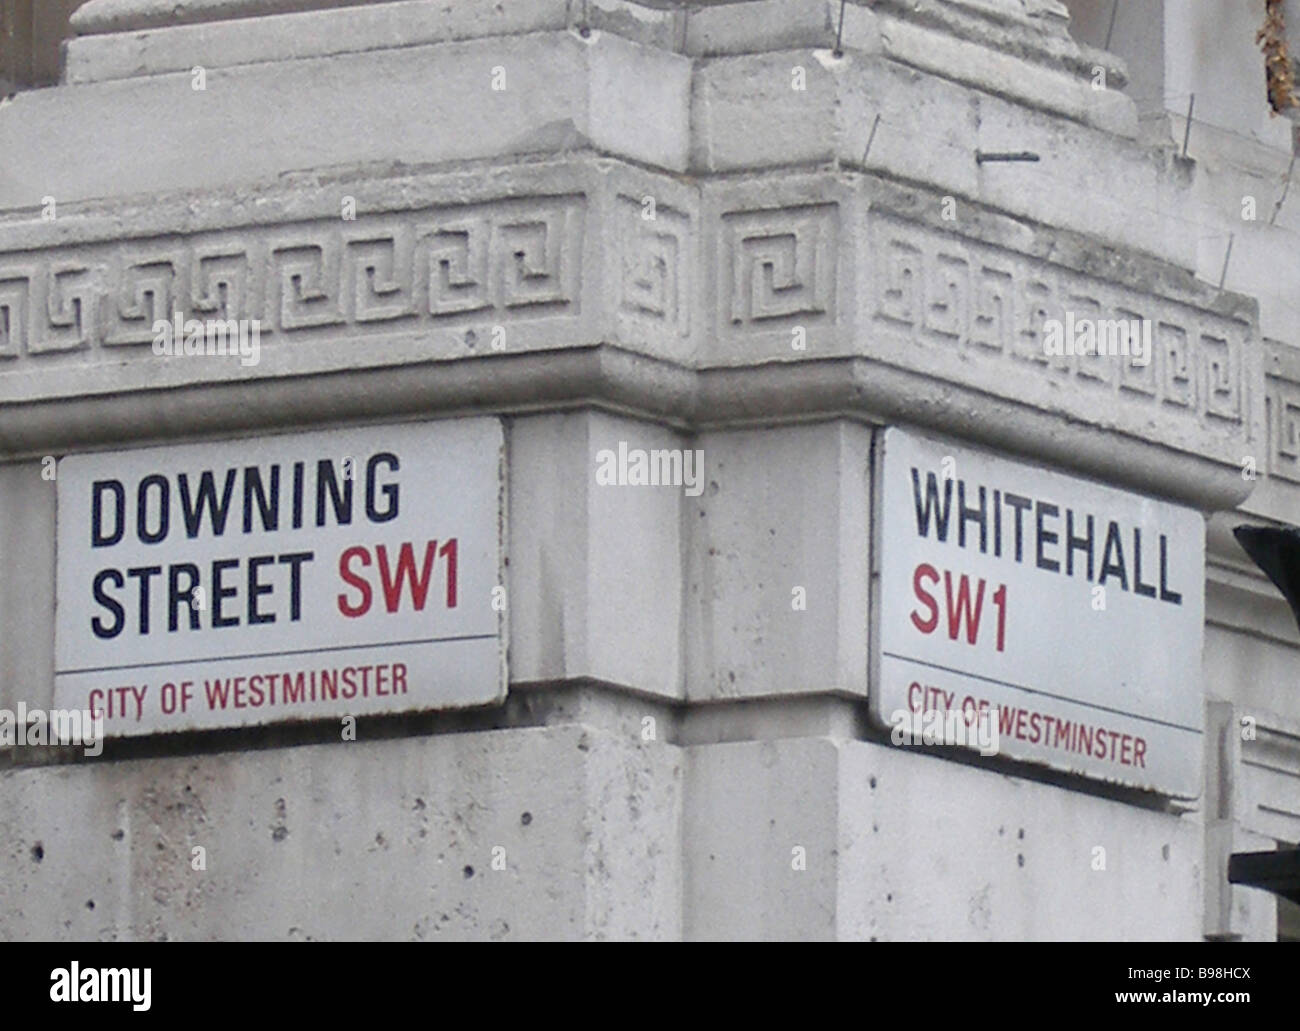 Corner of house between Downing Street and Whitehall Street - Stock Image